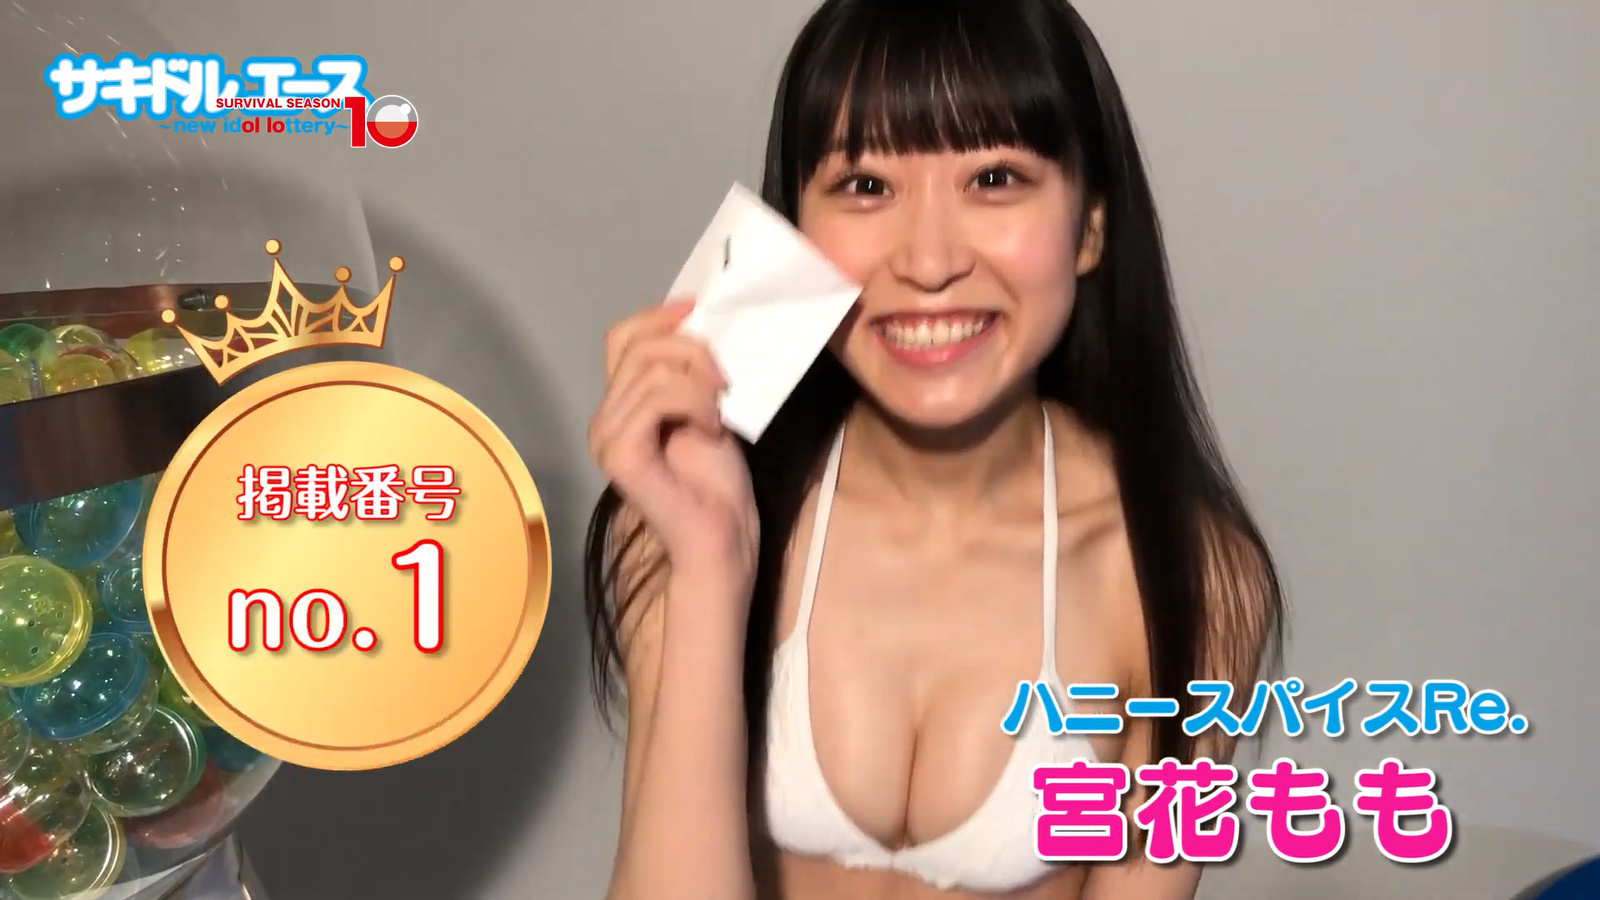 Sakidol Ace 10 Introduction Movie Capture of Swimsuit021